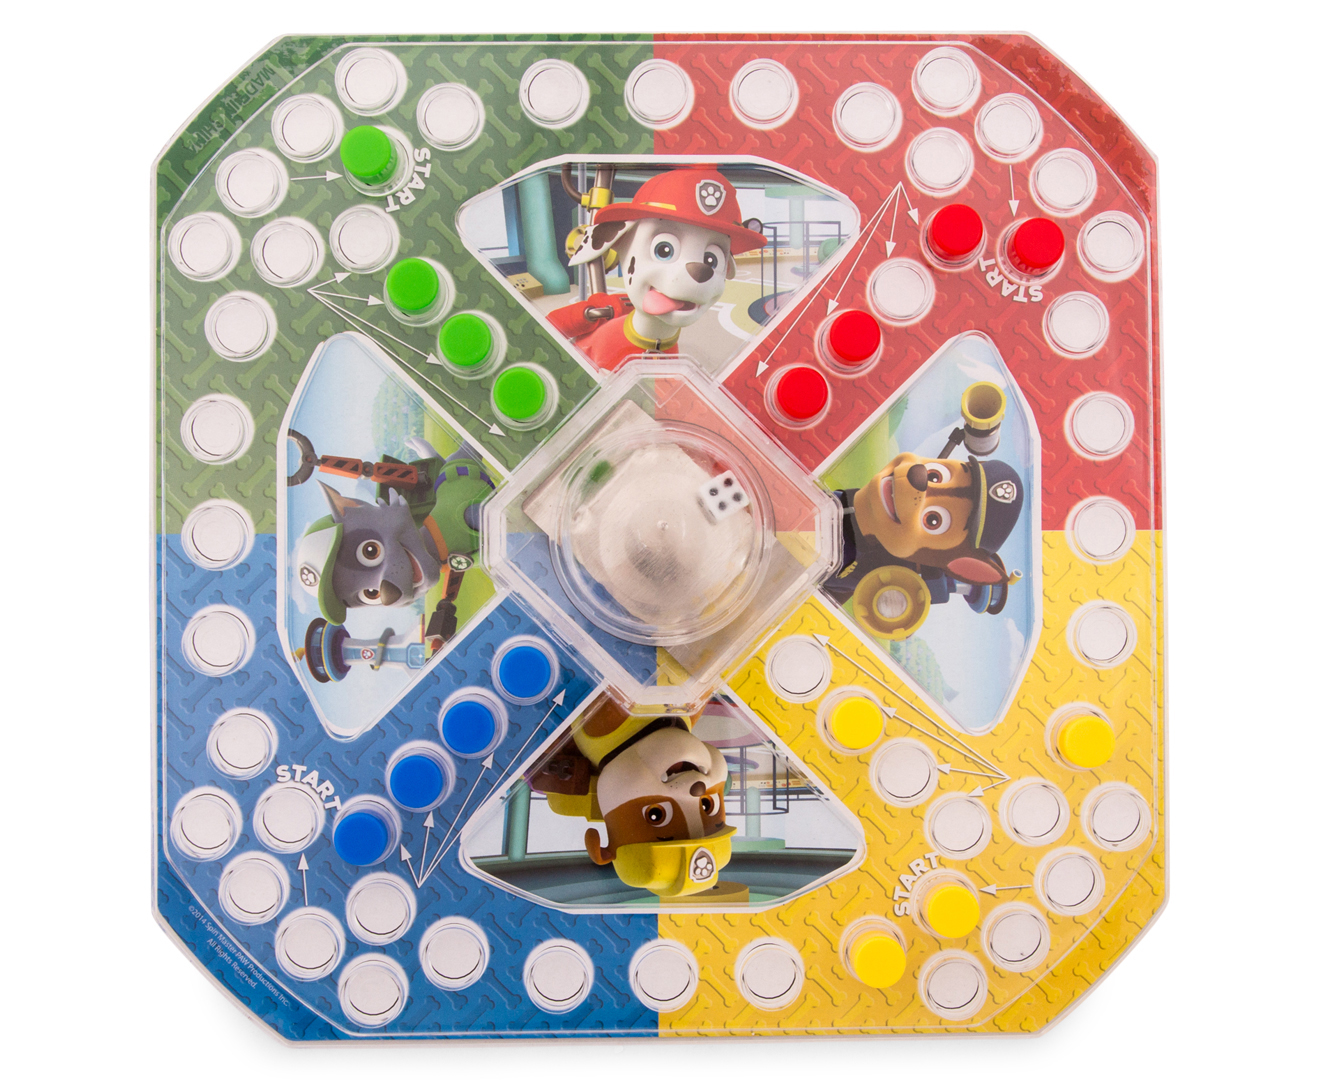 New Paw Patrol Pop Up Frustration Game